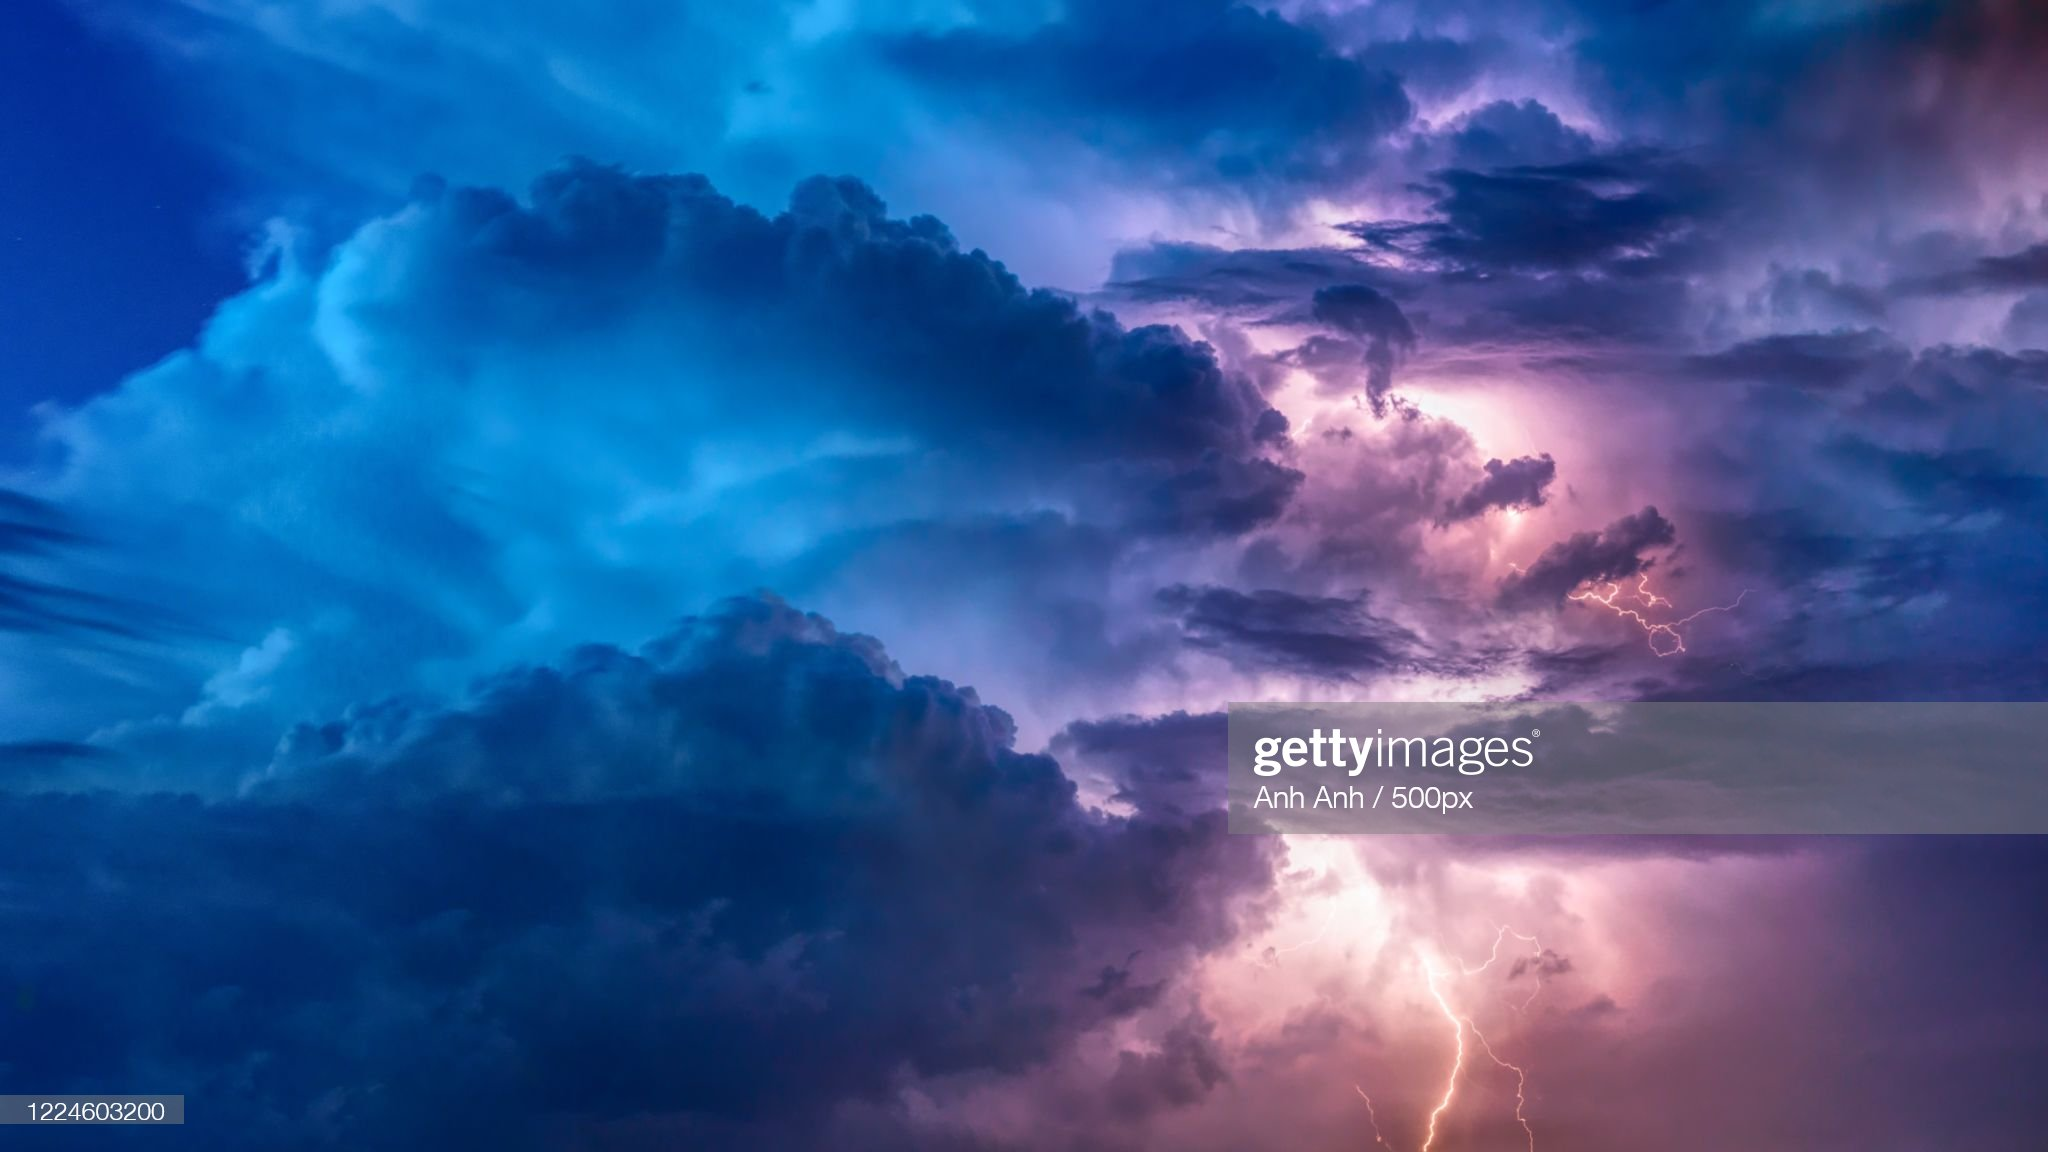 View of stormy sky with lighting : 圖庫照片